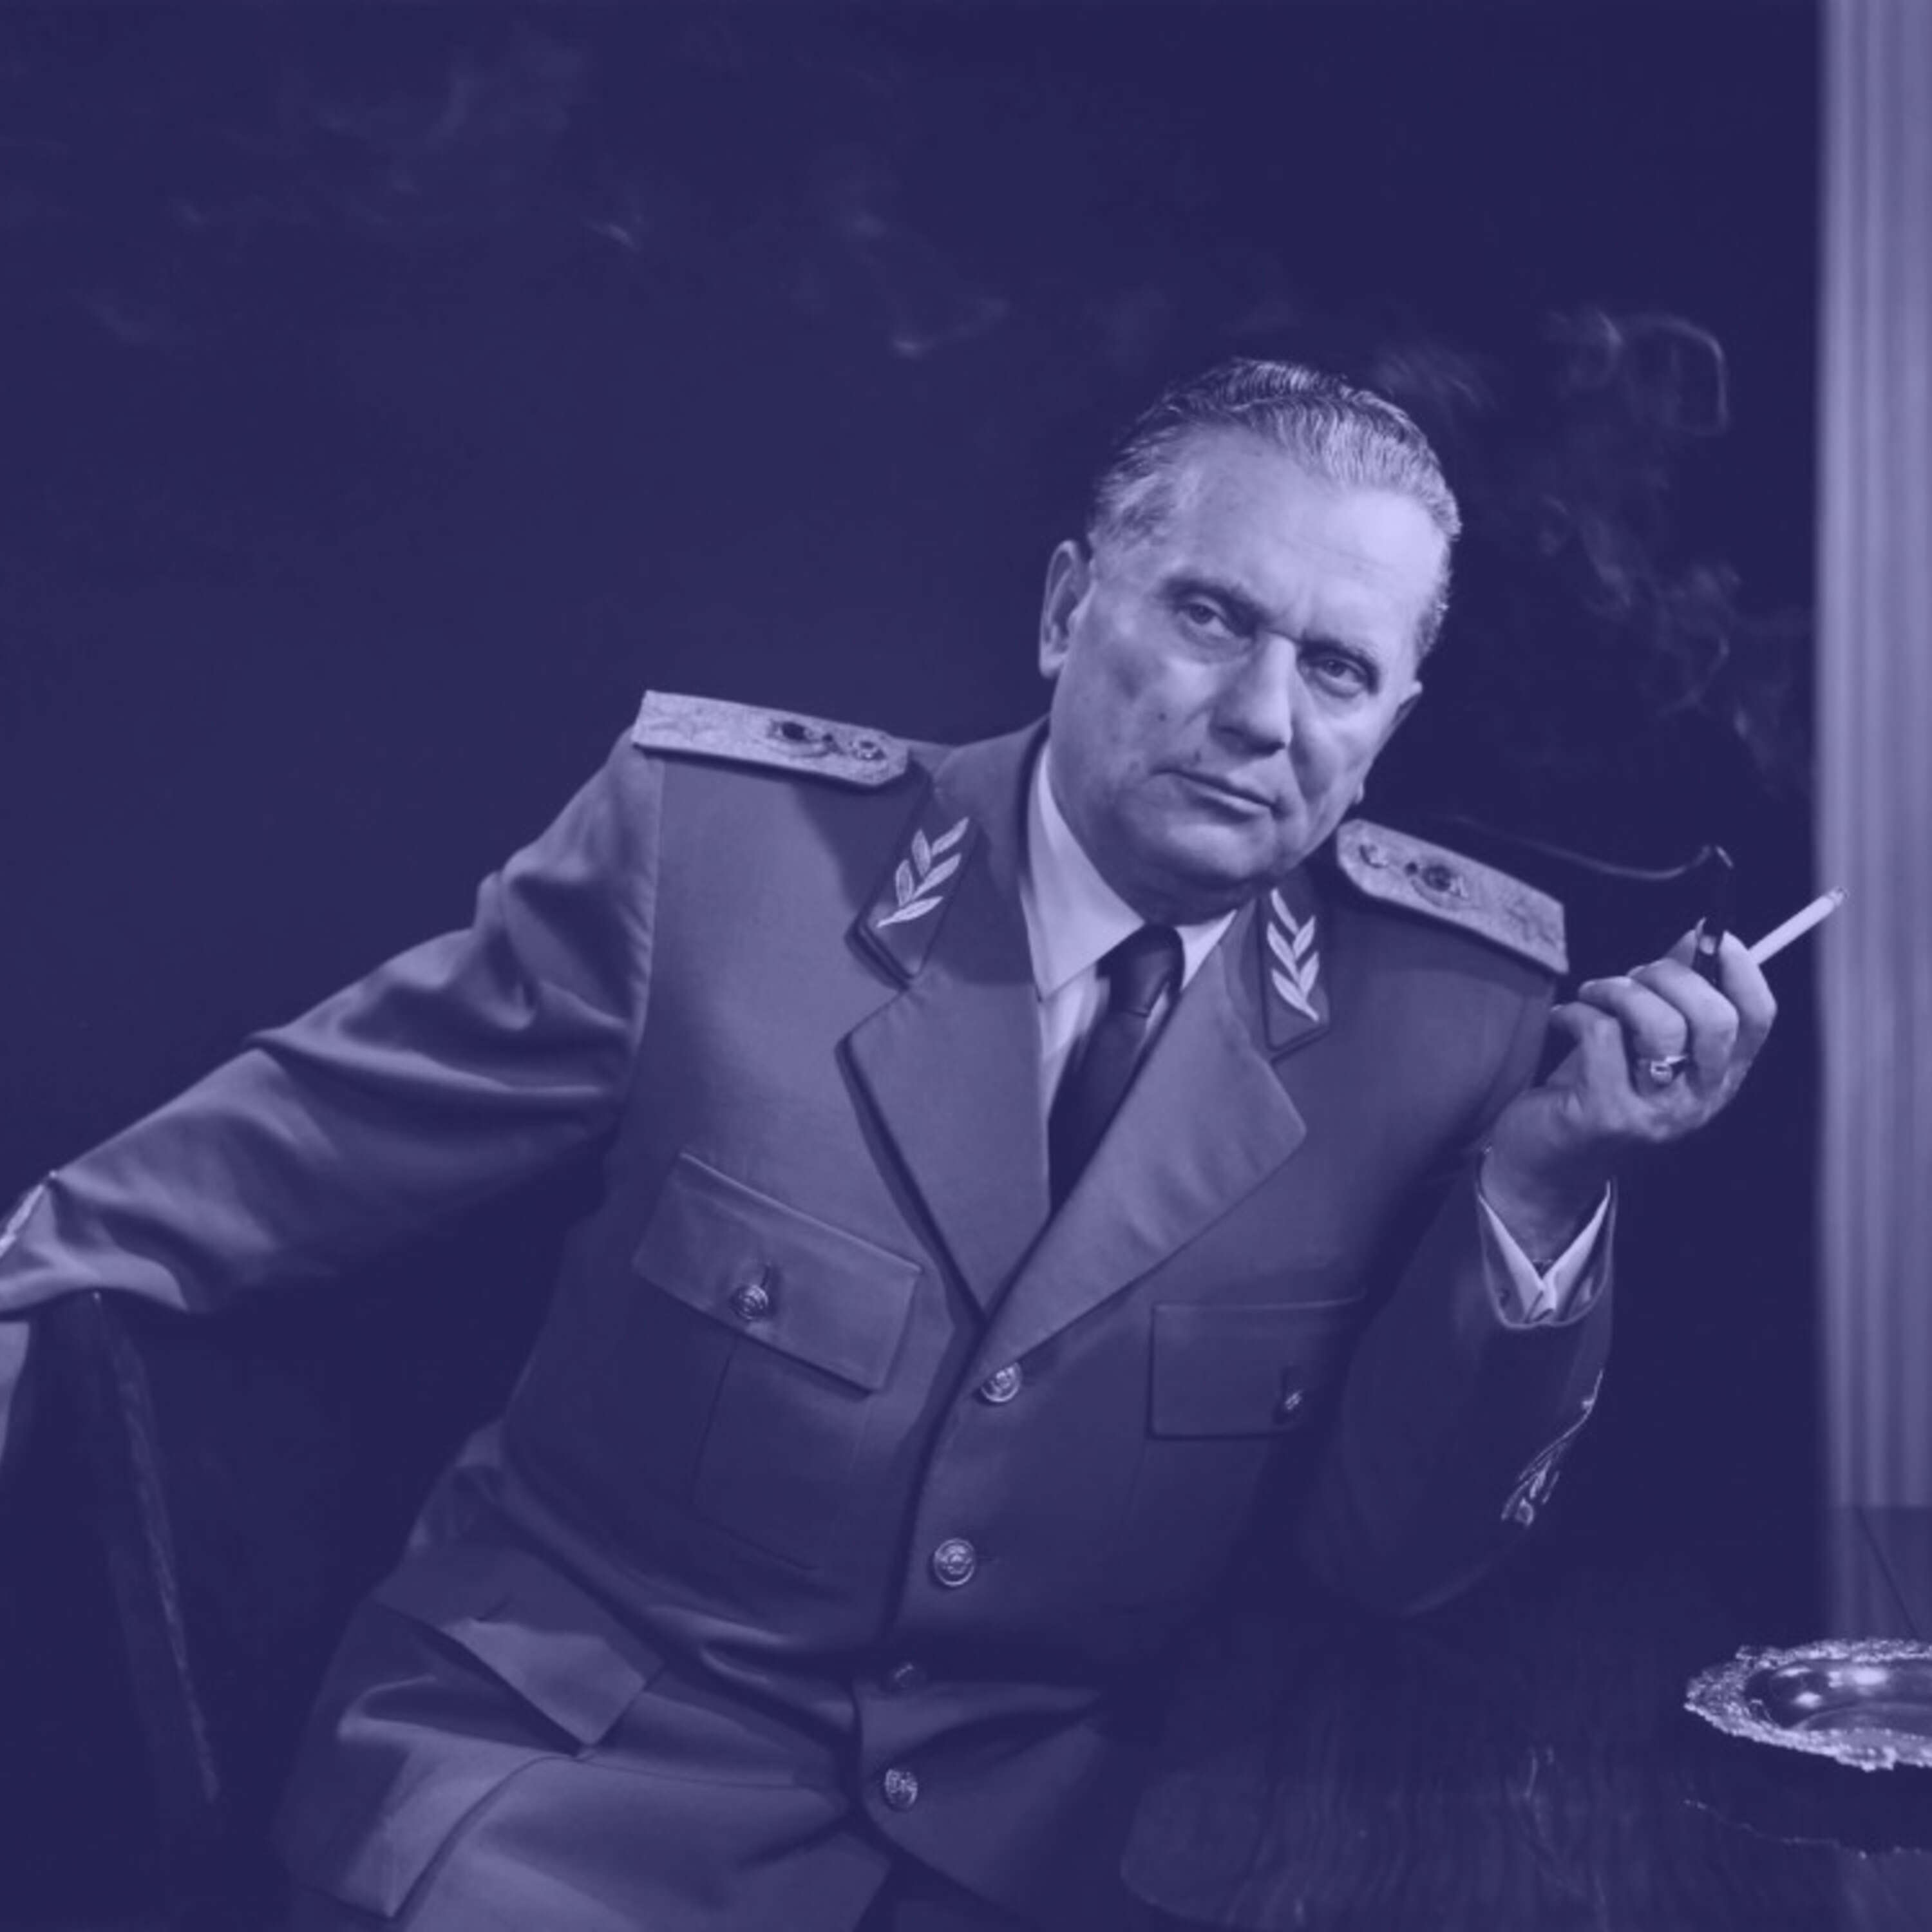 Tito | The Man Who Stood Up To Stalin